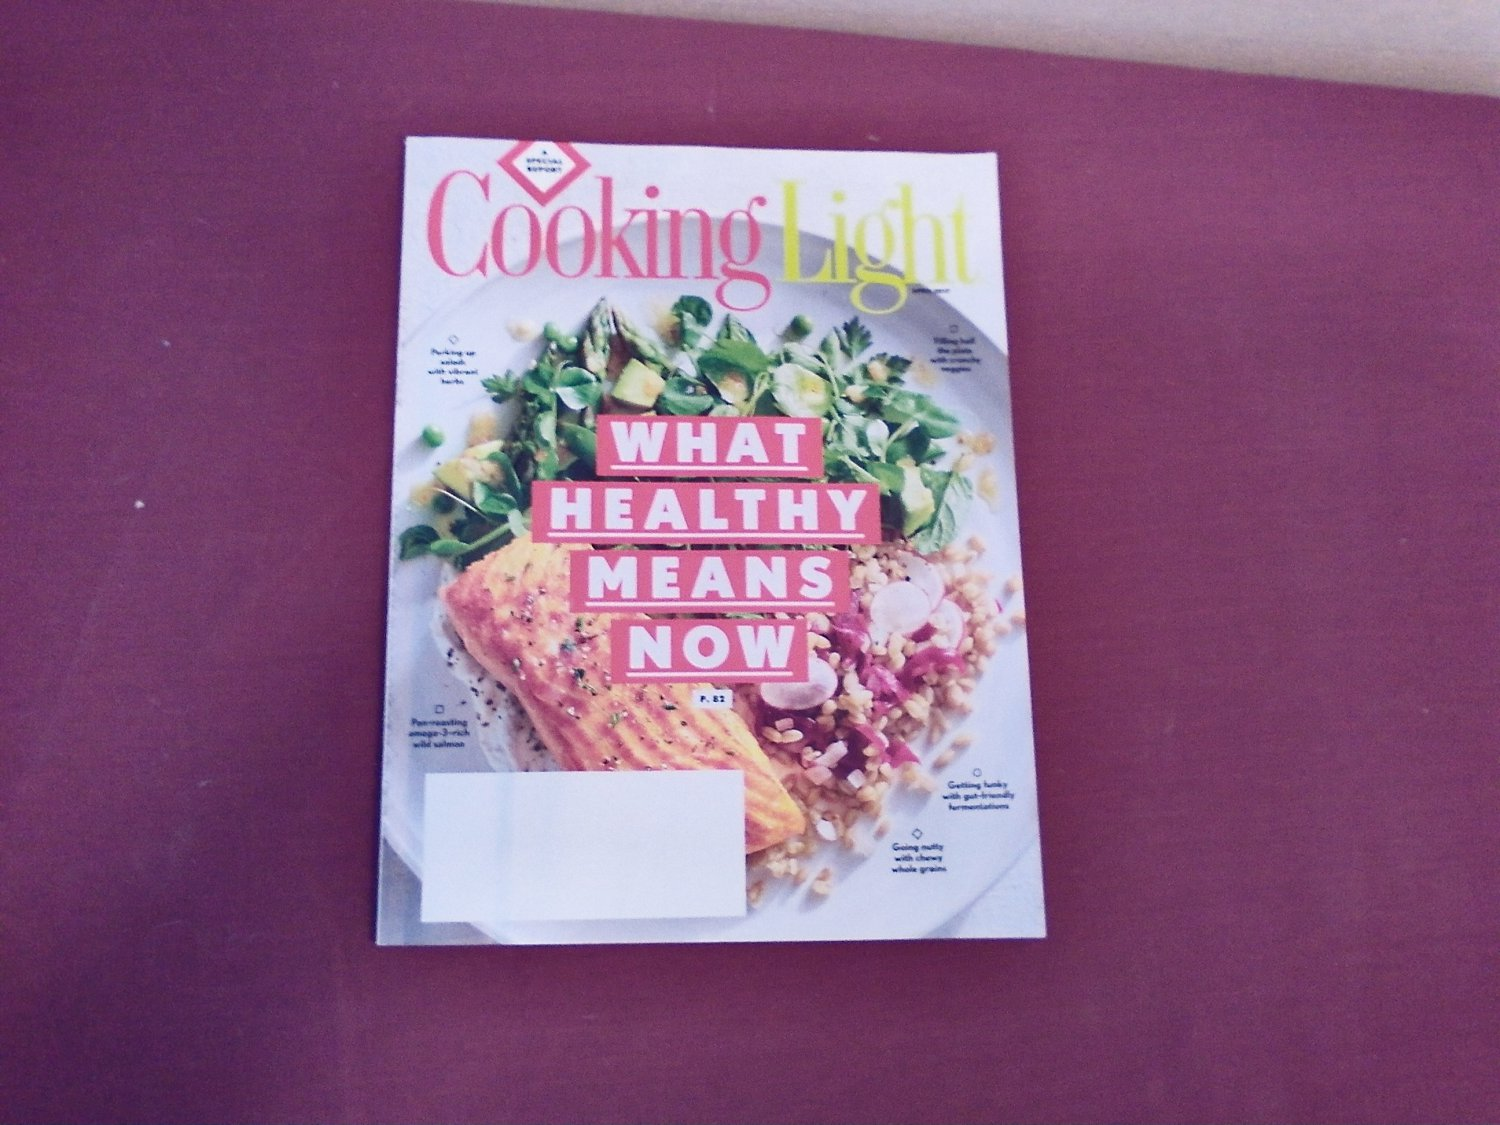 Cooking Light April 2017 Vol. 31 No. 3 - What Healthy Means Now A Special Report (G1)